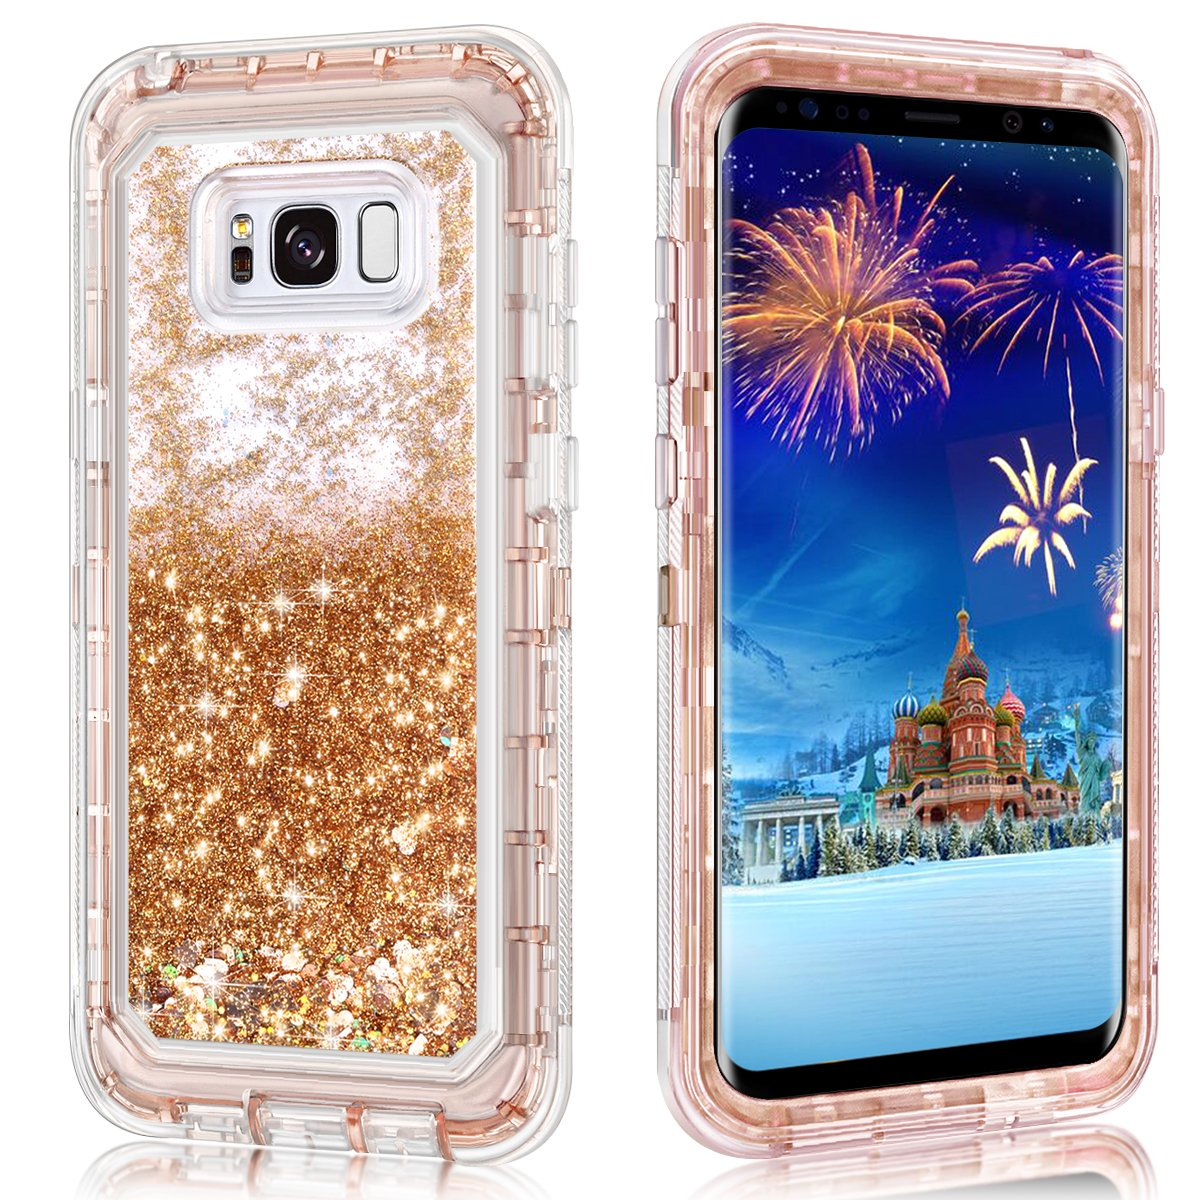 promo code a0233 155b5 Galaxy S8 Plus Case,Wollony 360 Full Body Shockproof Liquid Glitter  Quicksand Bling Case Heavy Duty Phone Bumper Soft Non-Slip Clear Rubber  Protective ...